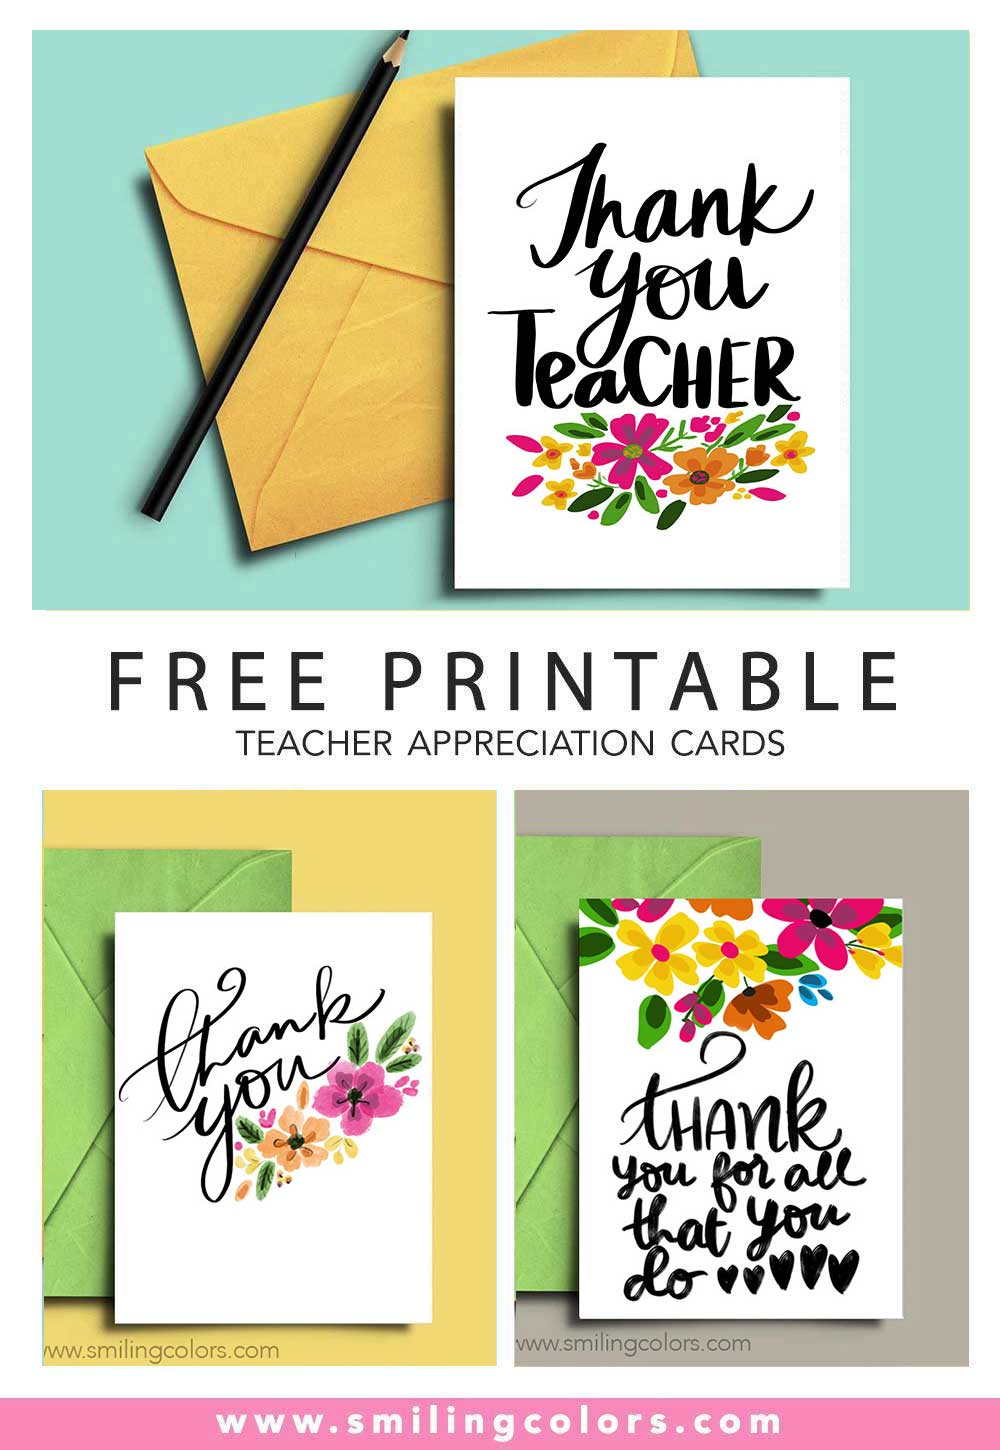 photograph about Free Printable Thank You Cards for Students titled Thank by yourself instructor: A preset of No cost printable observe playing cards